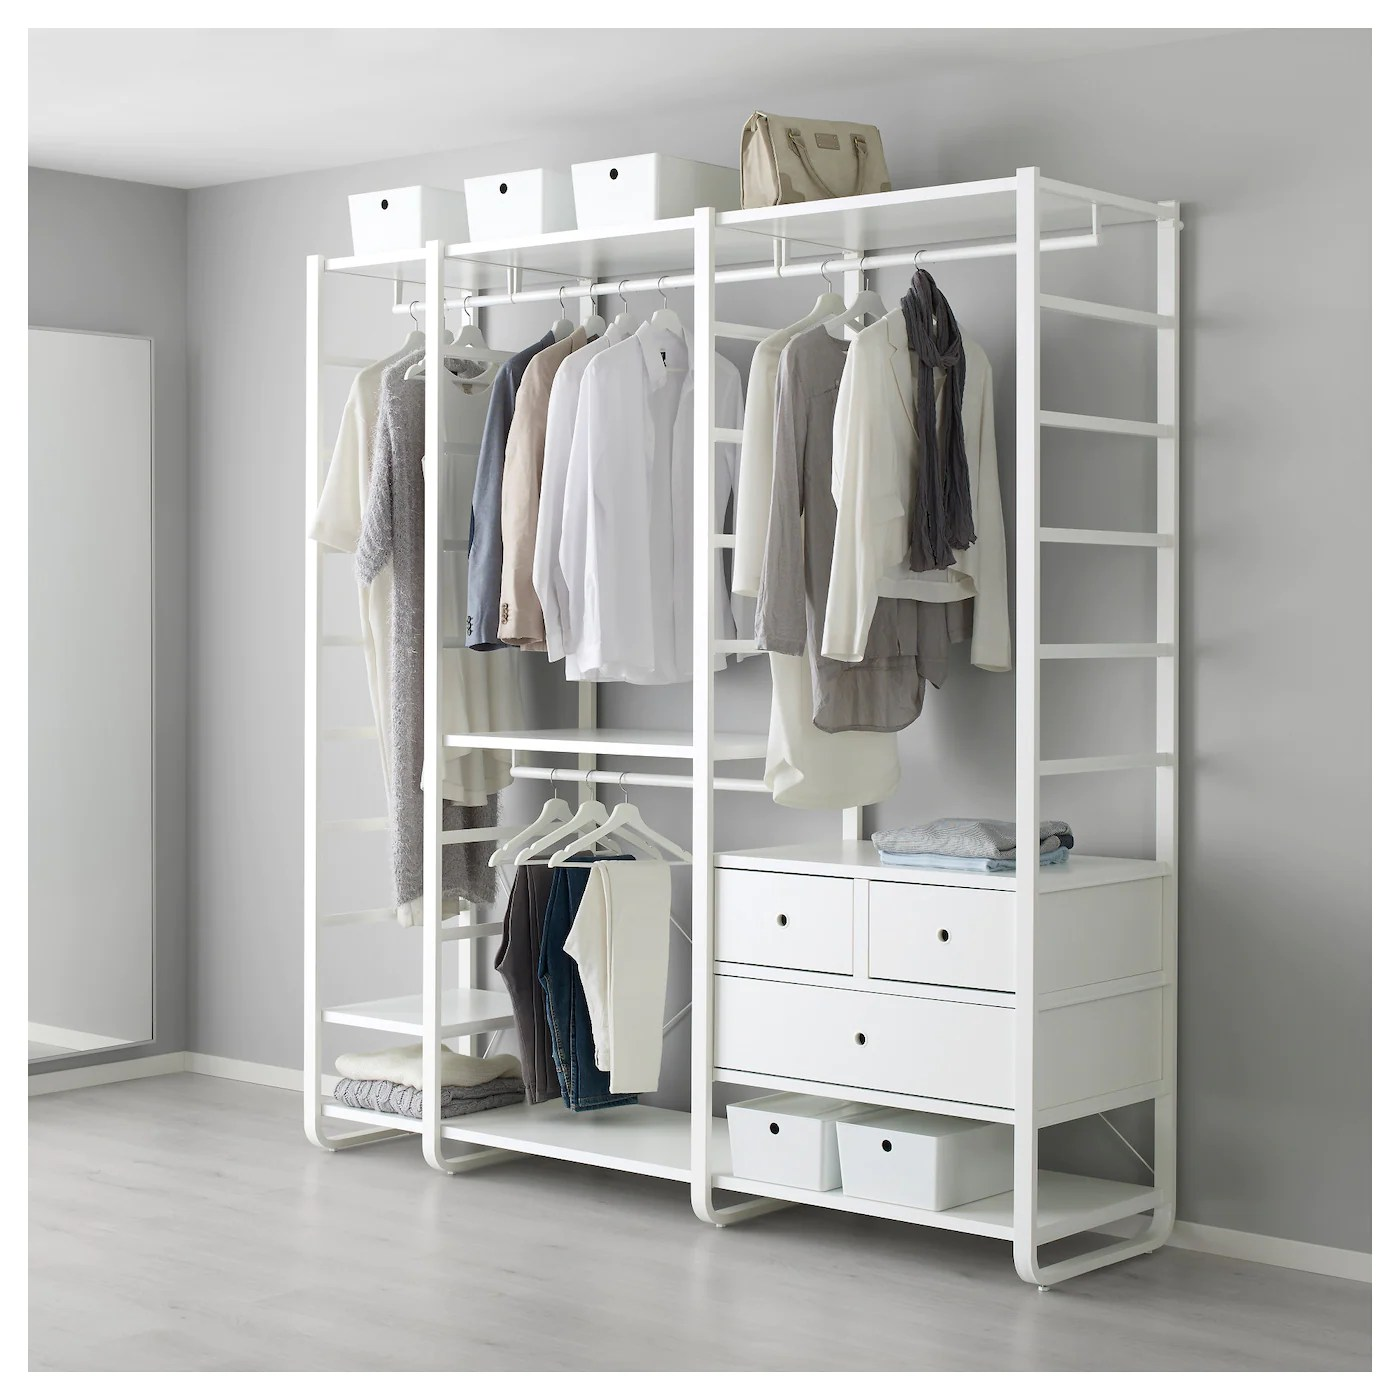 Dressing Ikea Stolmen Open Wardrobe Systems Open Storage Systems Ikea